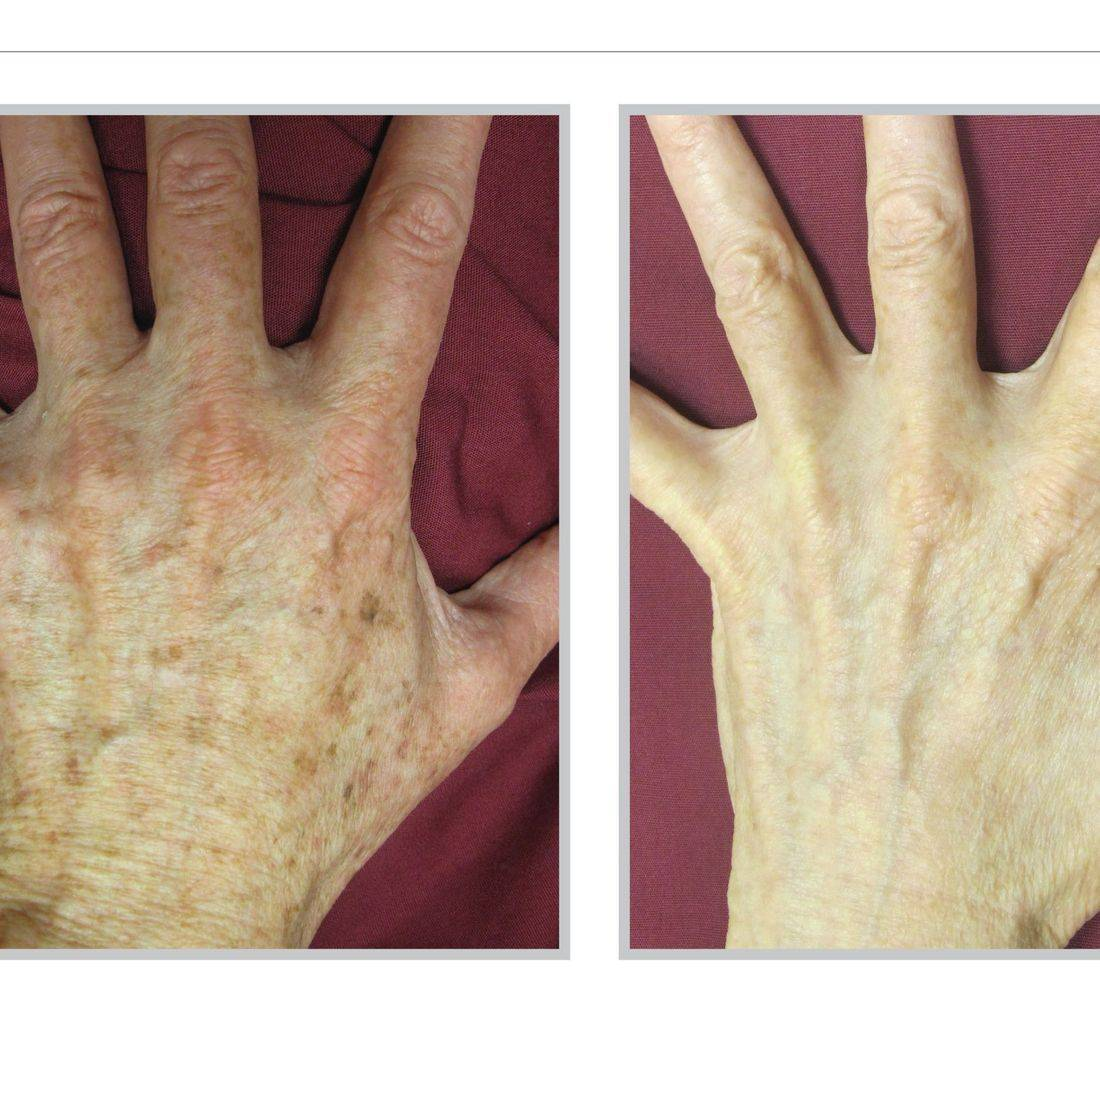 BBL Treatment Sciton Laser Reverse Aging Anti Aging Sun Spot